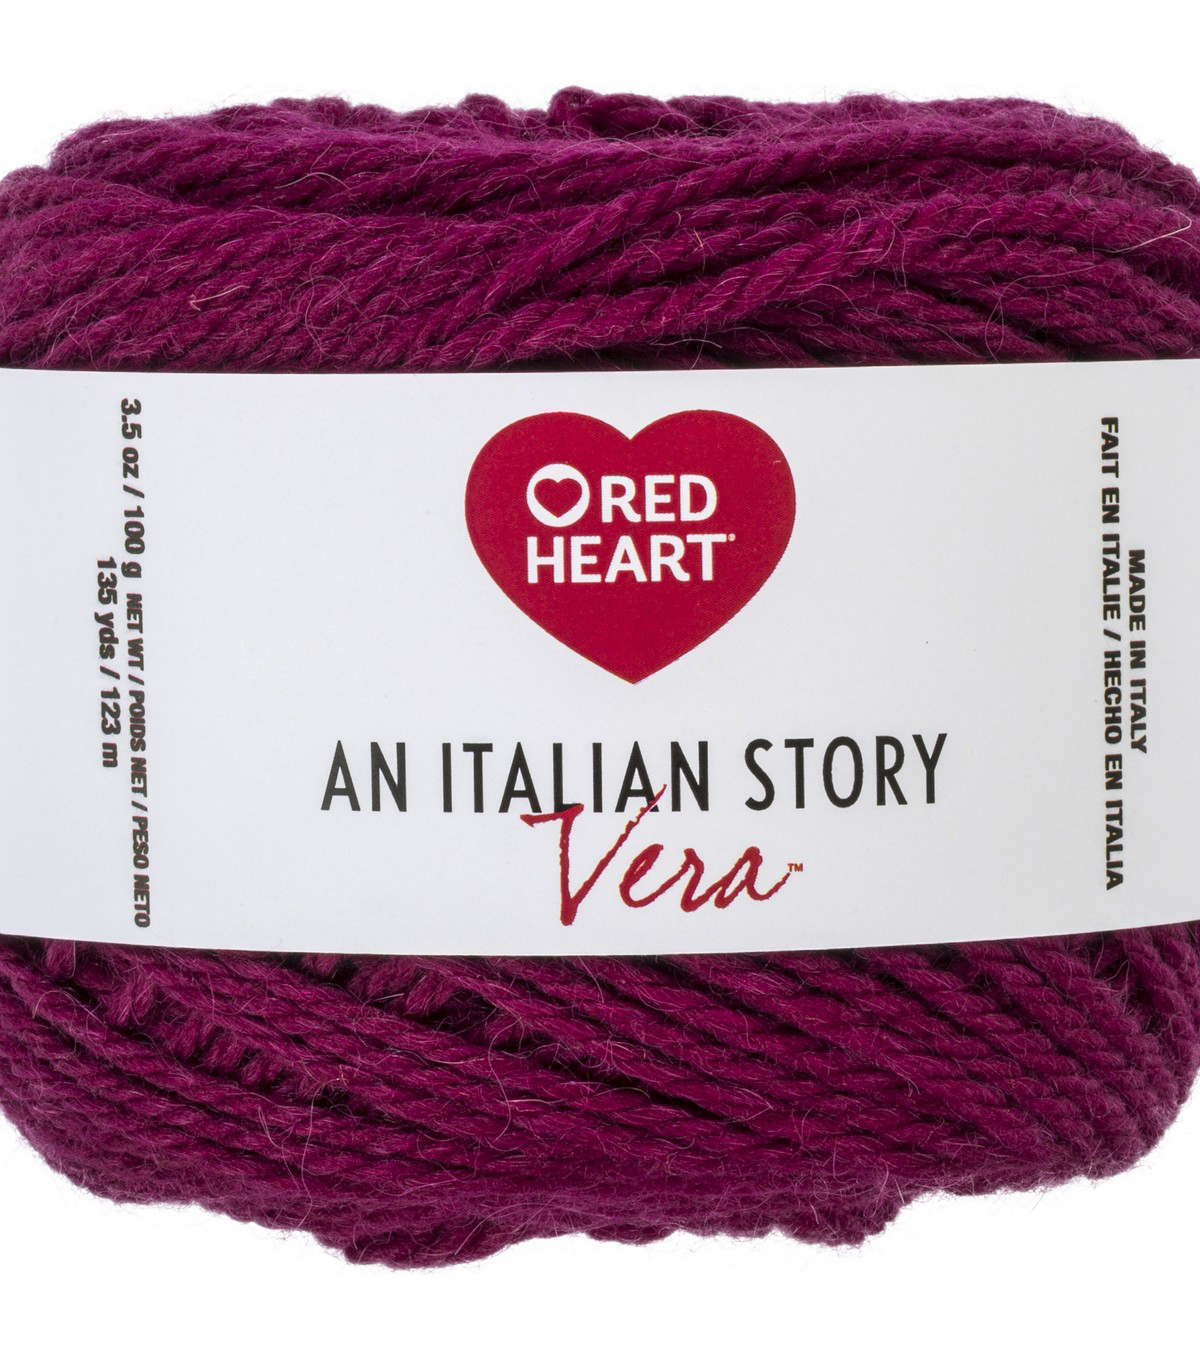 Red Heart An Italian Story Vera Yarn, Melanzana